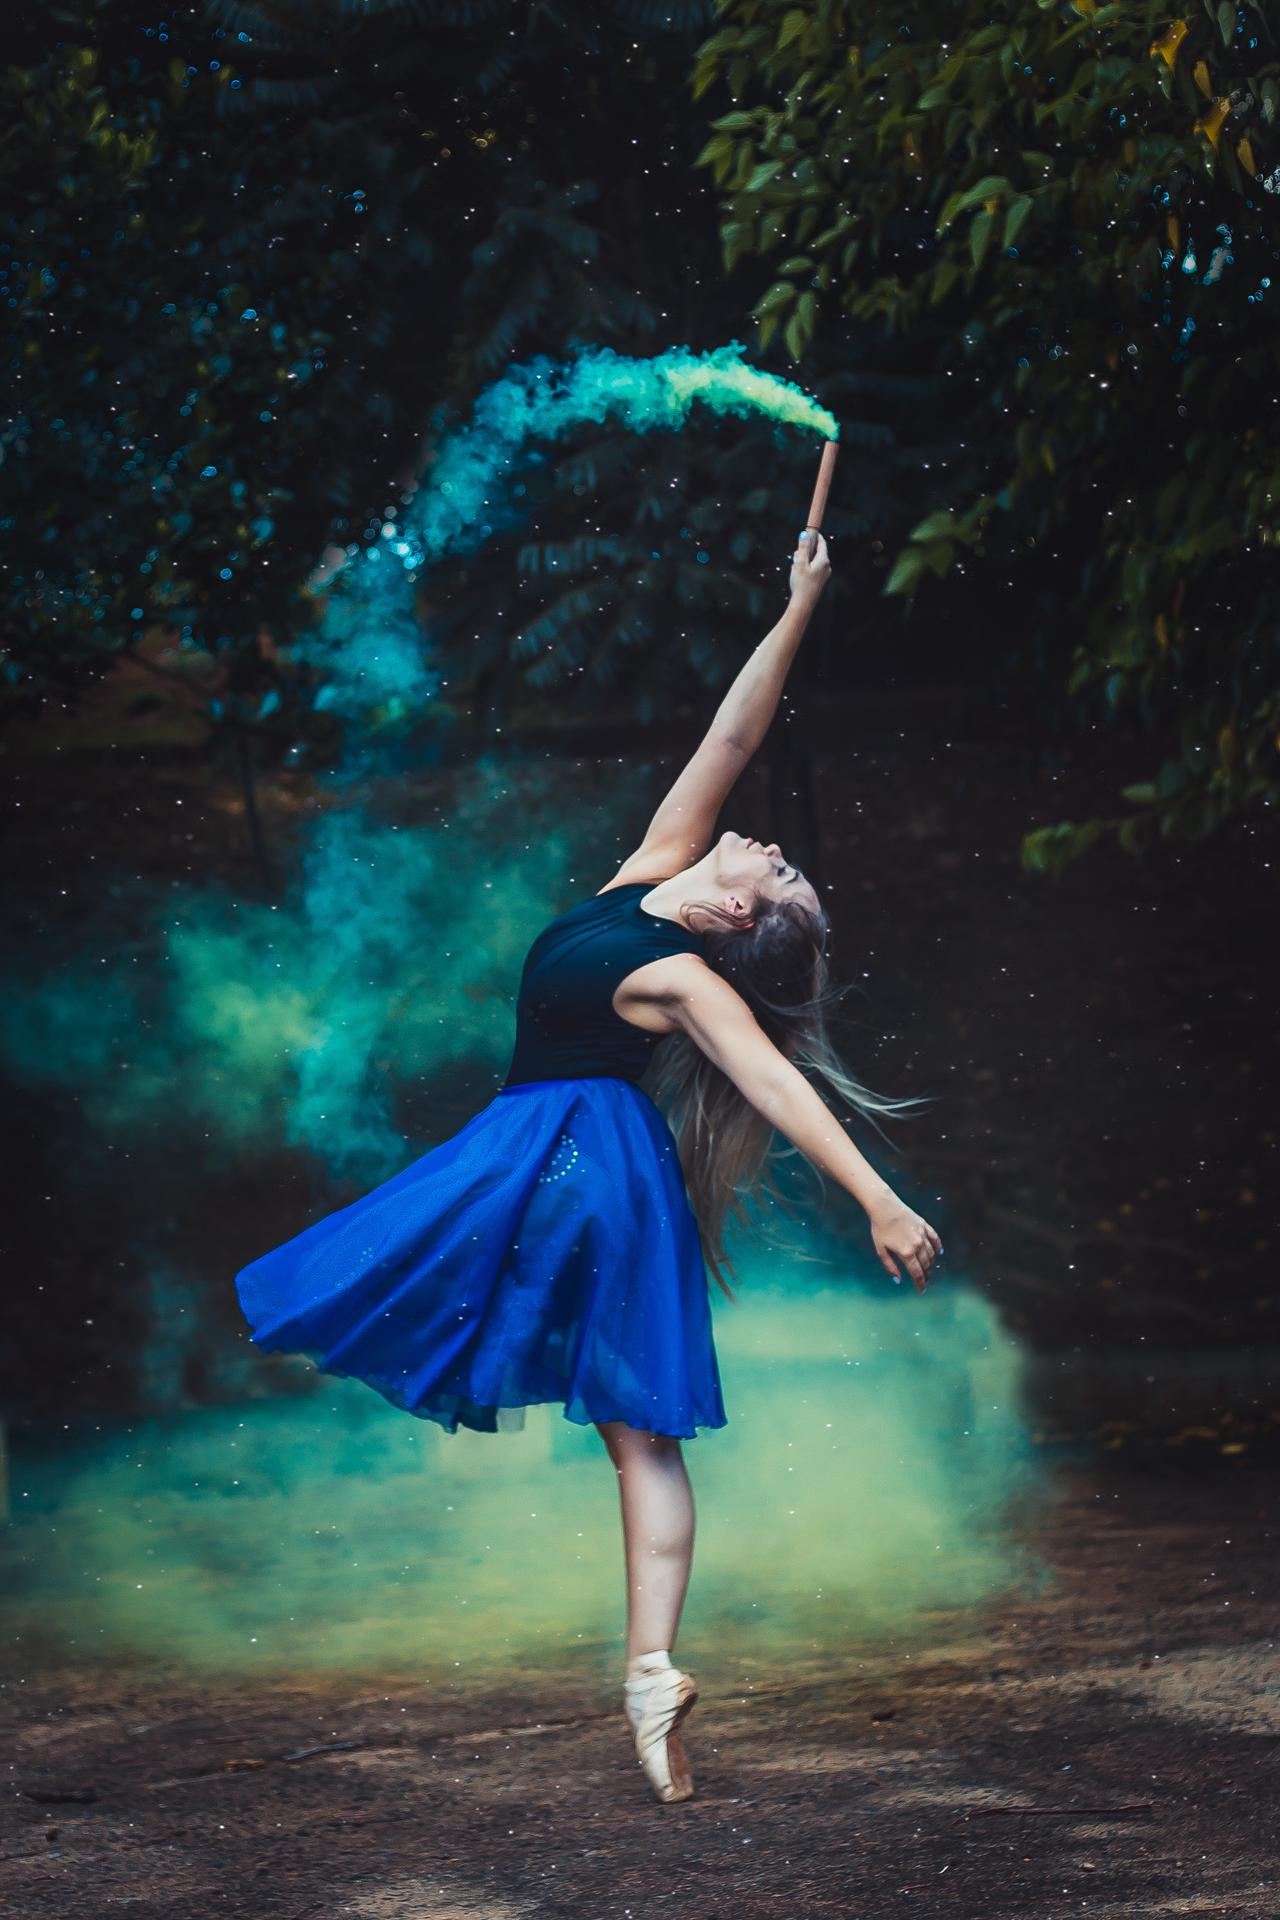 An image of a professional dancer covered under entertainer insurance.